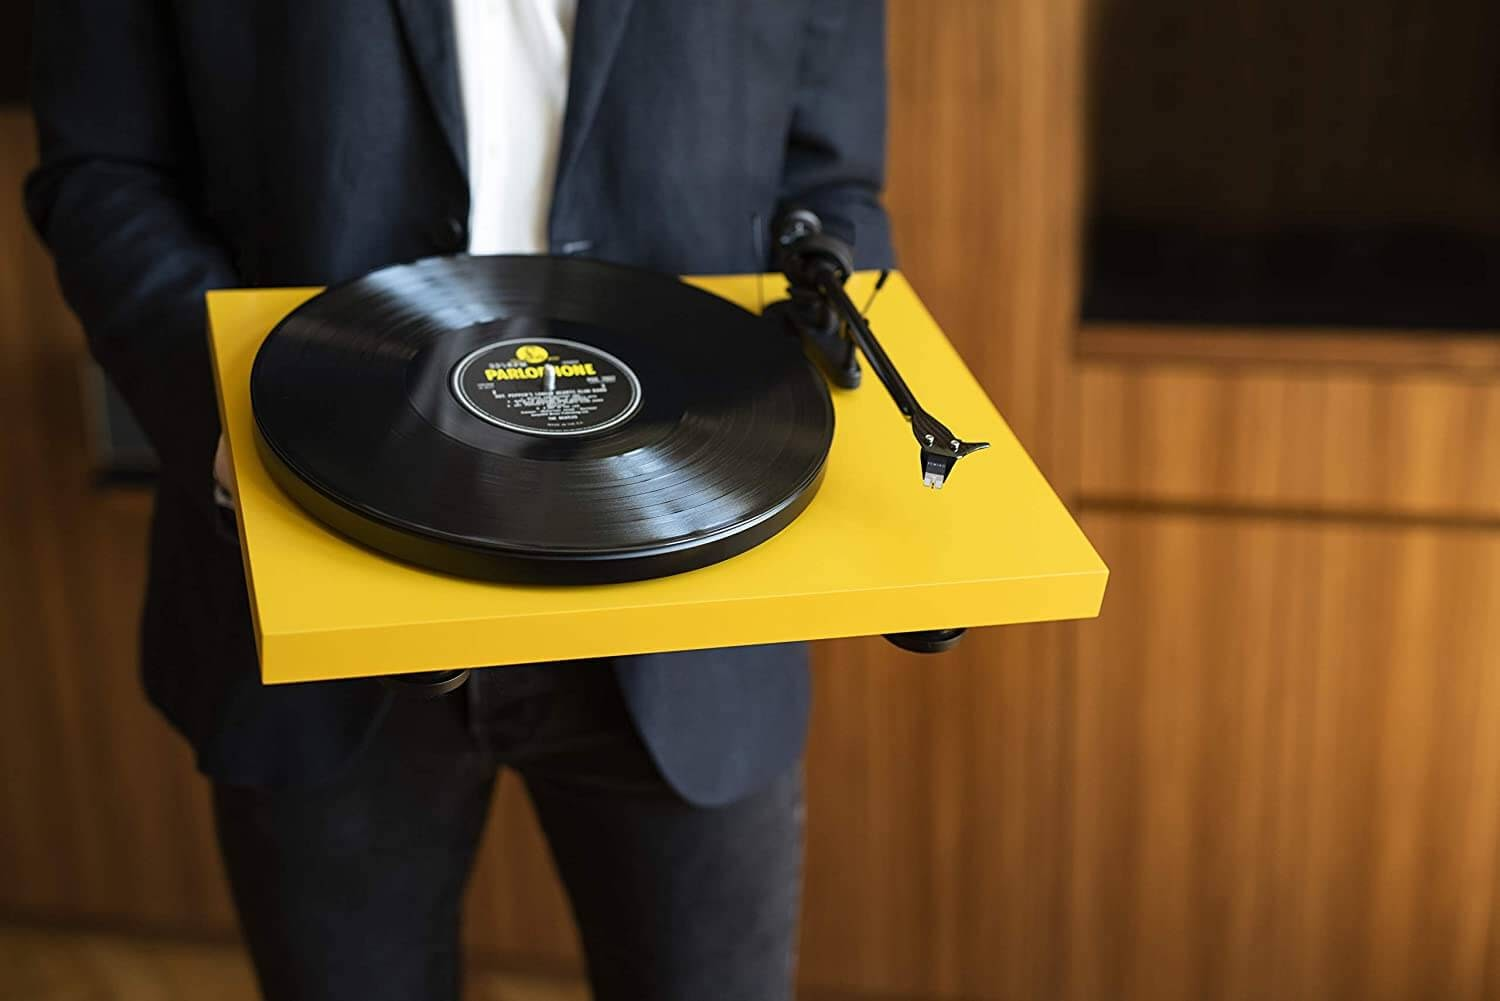 The Pro-Ject Debut Carbon EVO ($499)